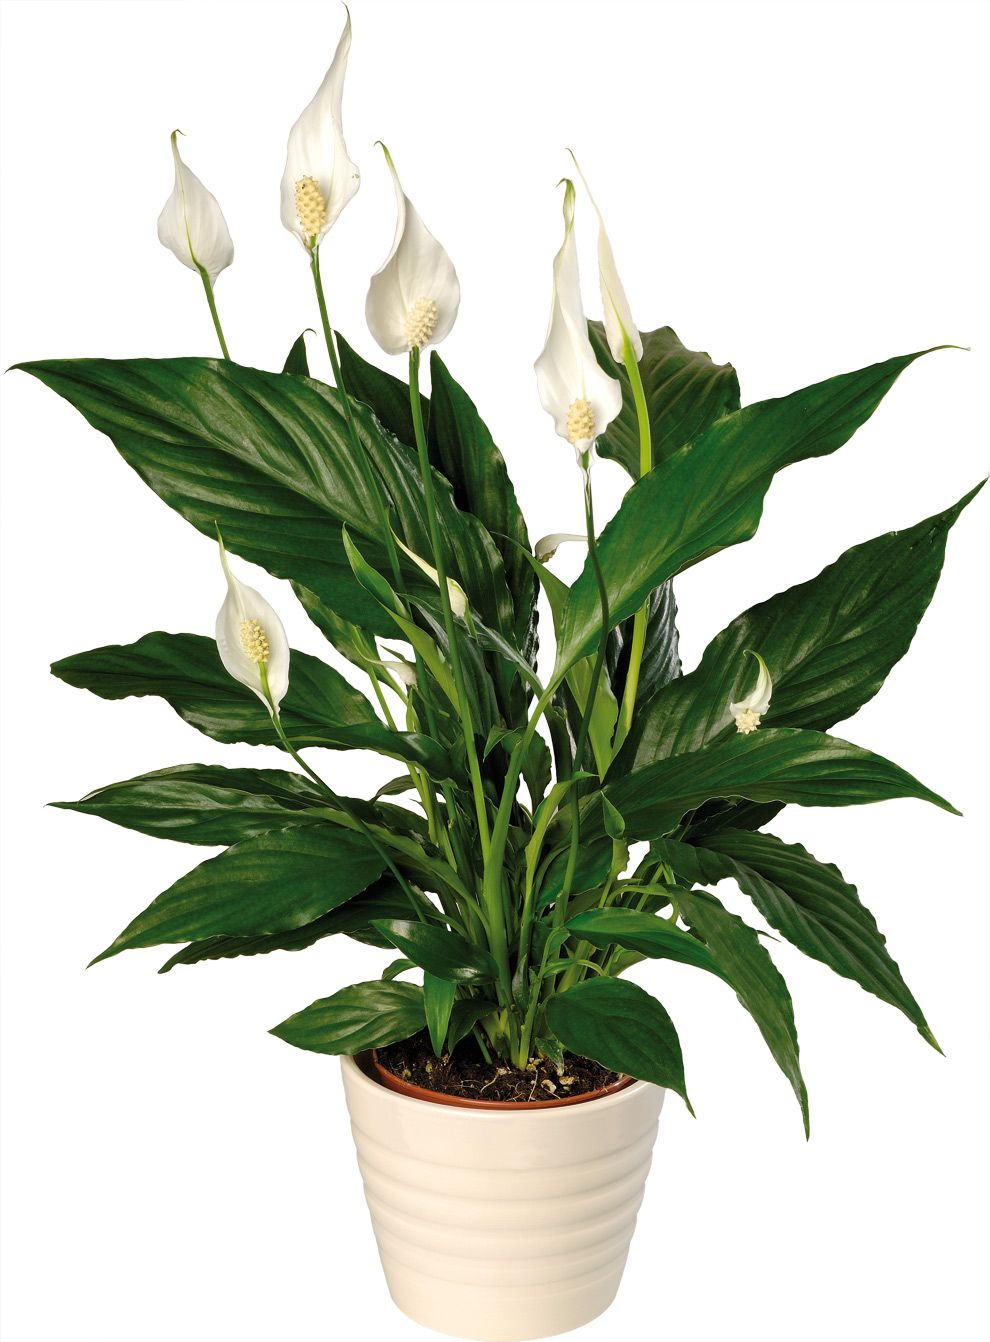 Green Cleaning Peace Lily Topped Nasas List For Removing All Three